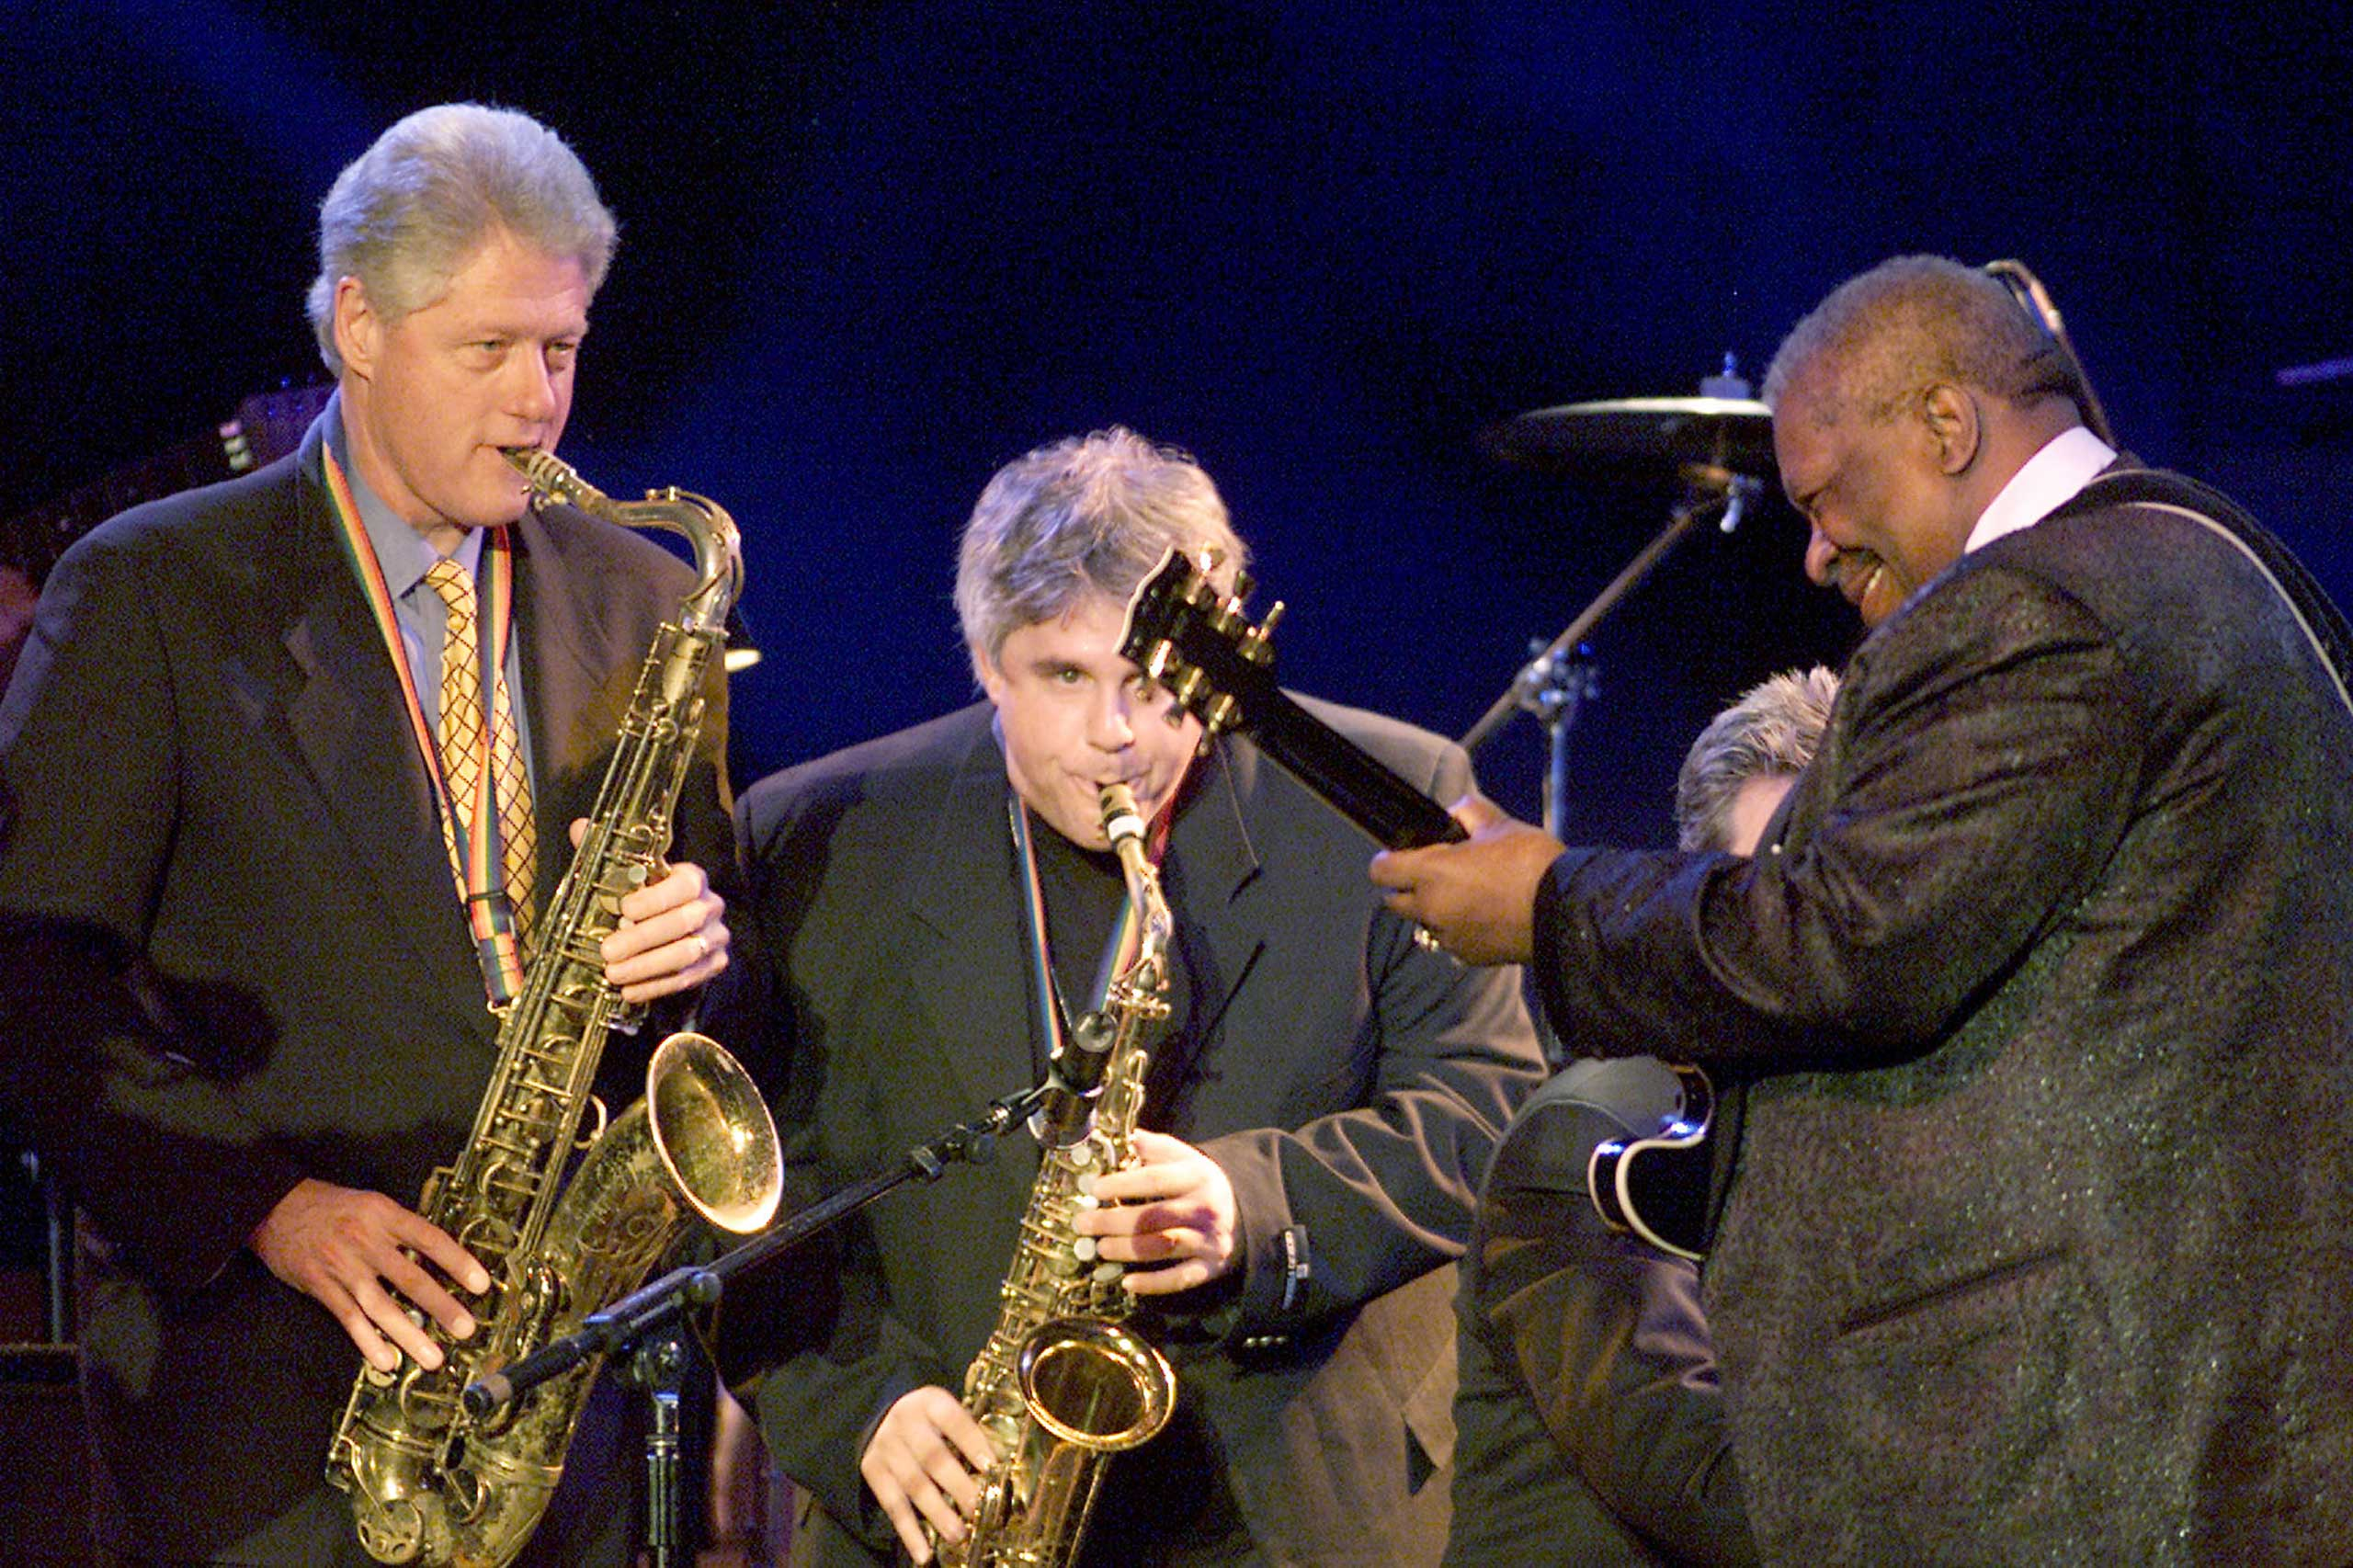 From Left: President Bill Clinton plays the sax with B.B. King at 'A Family Celebration 2001' at the Regent Beverly Wilshire Hotel in Beverly Hills, Calif. on April 1, 2001